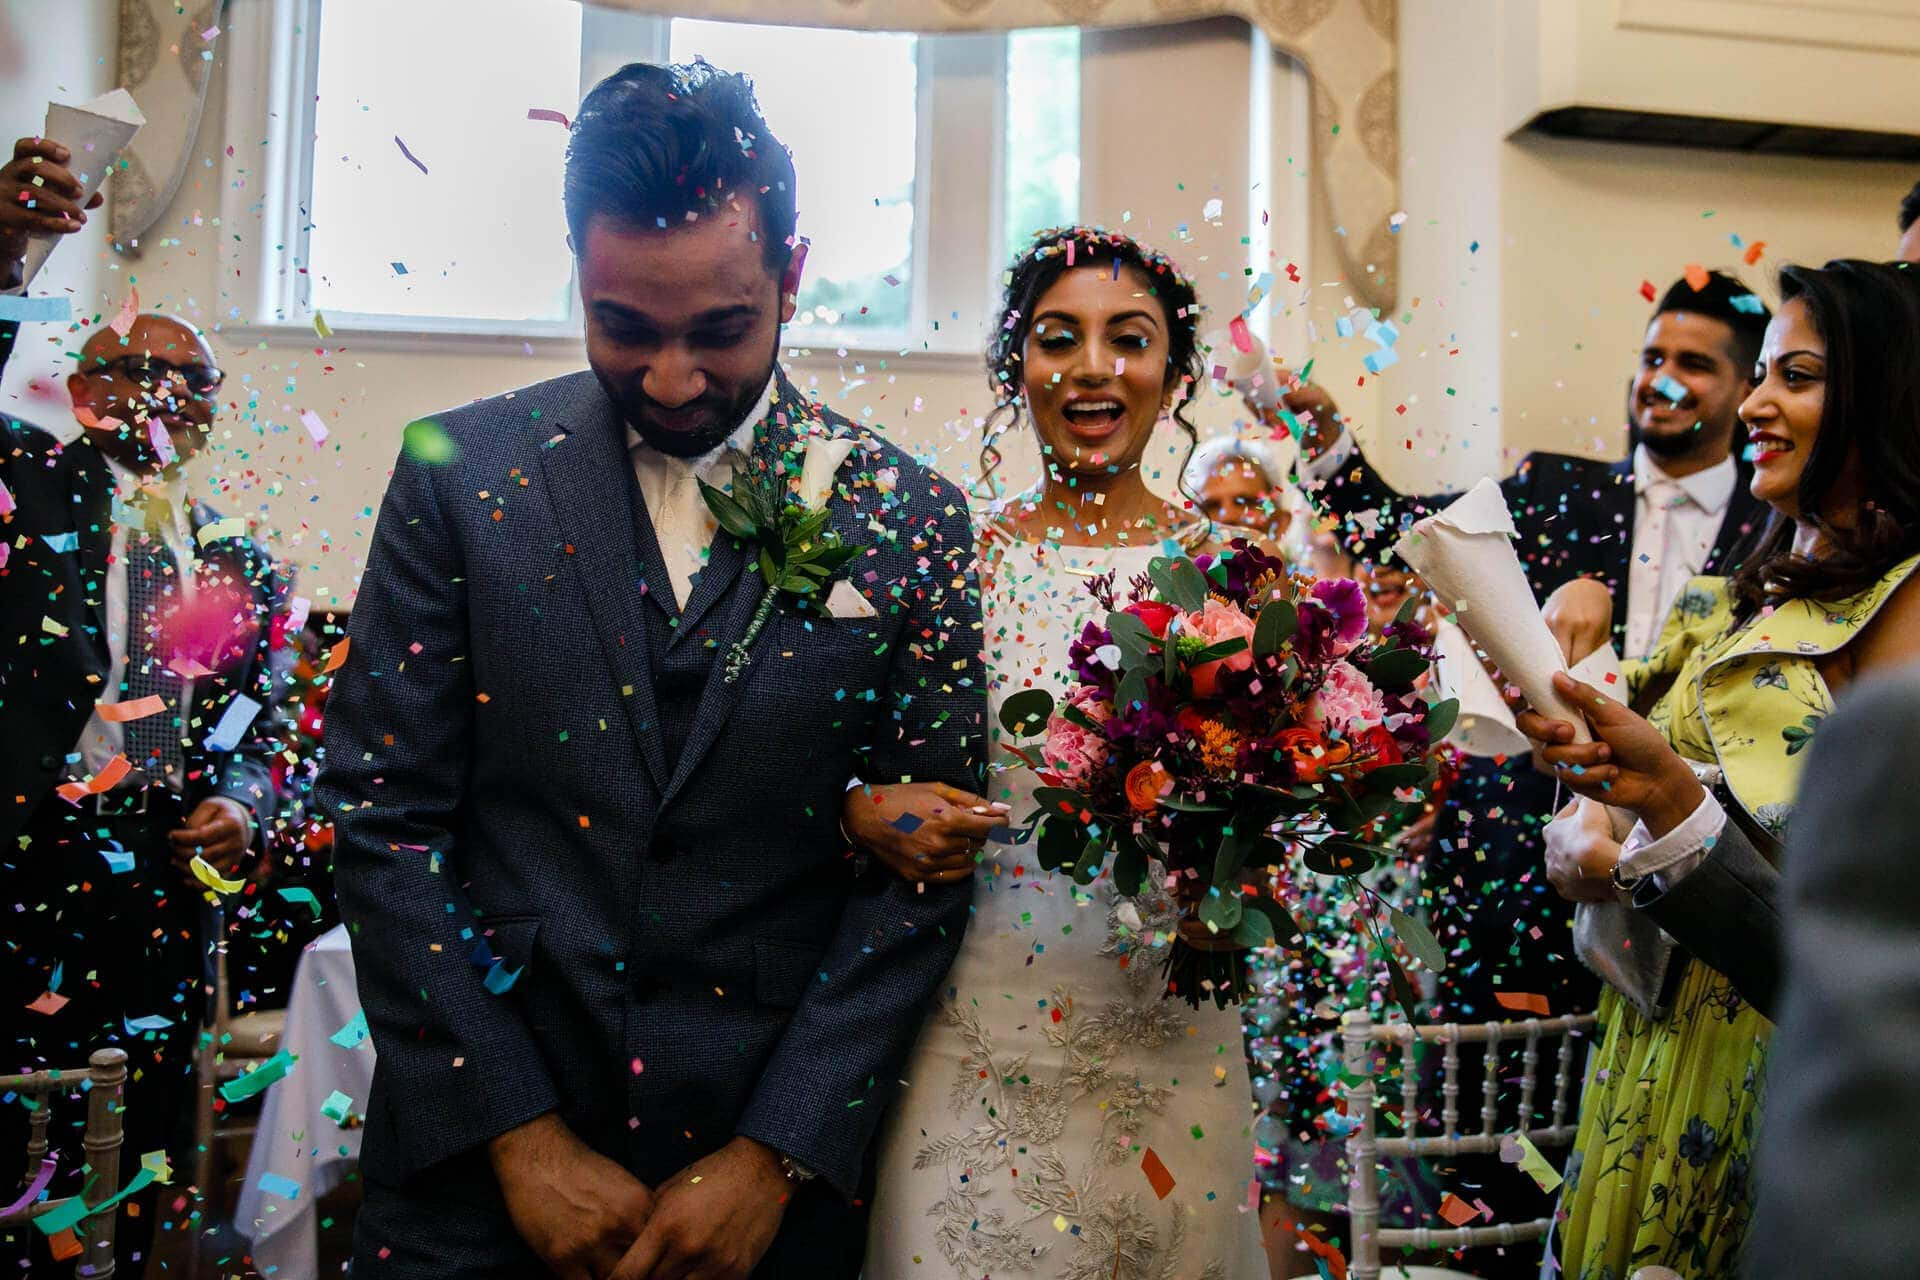 Bride and groom being showered with confetti